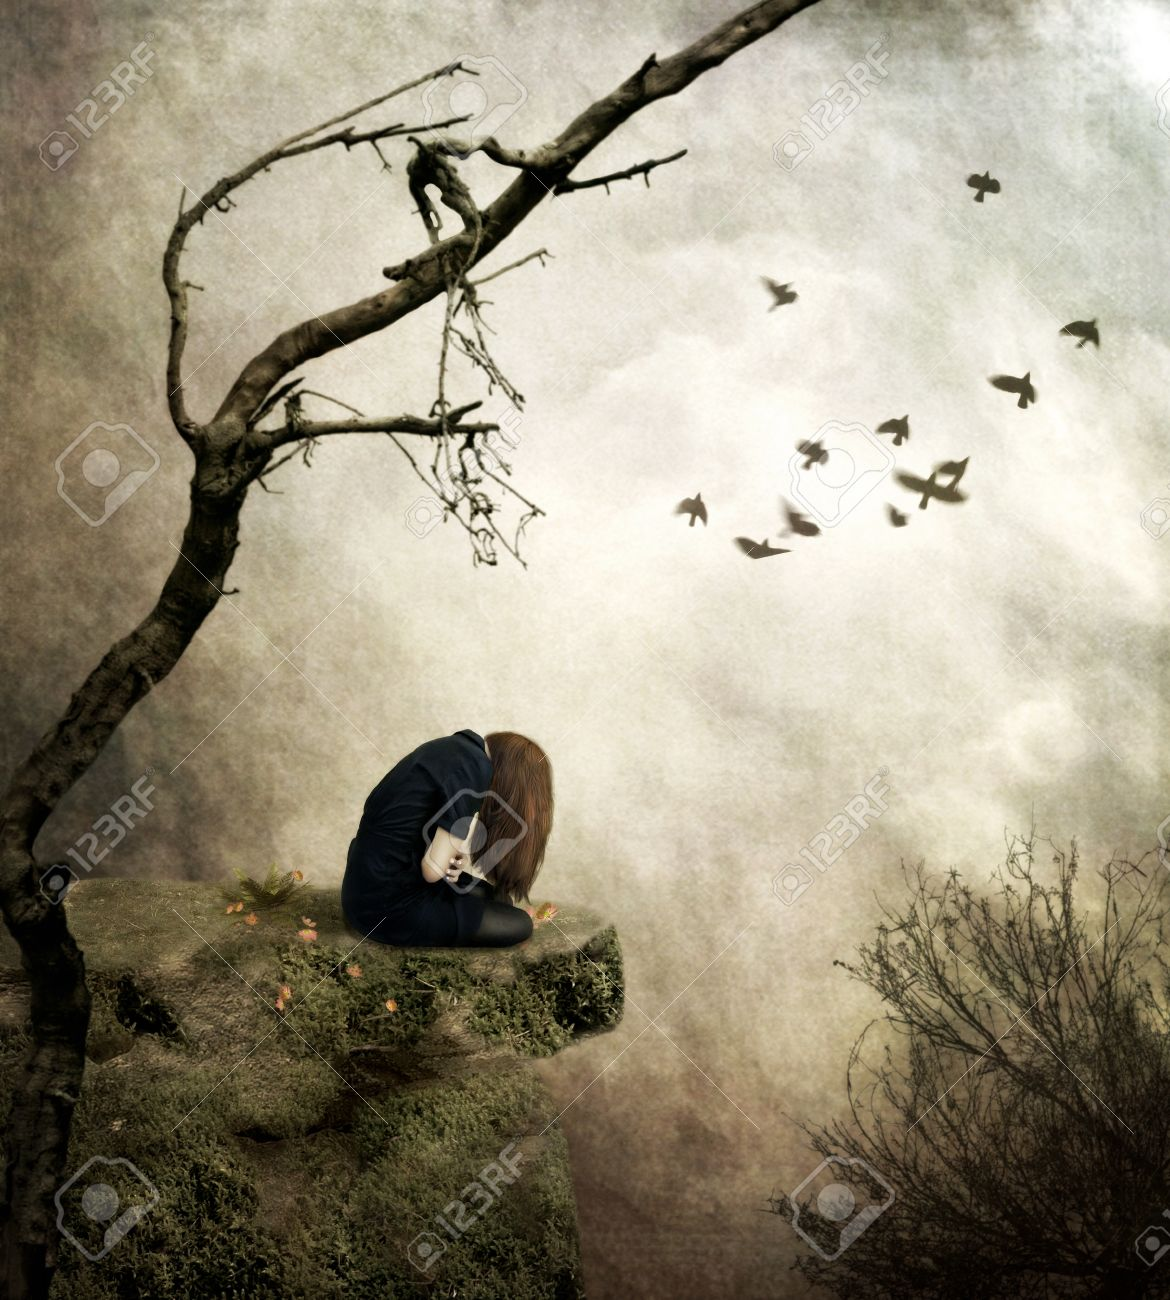 Sad girl sitting on a cliff one digital art emotional stock photo sad girl sitting on a cliff one digital art emotional stock photo 61440874 altavistaventures